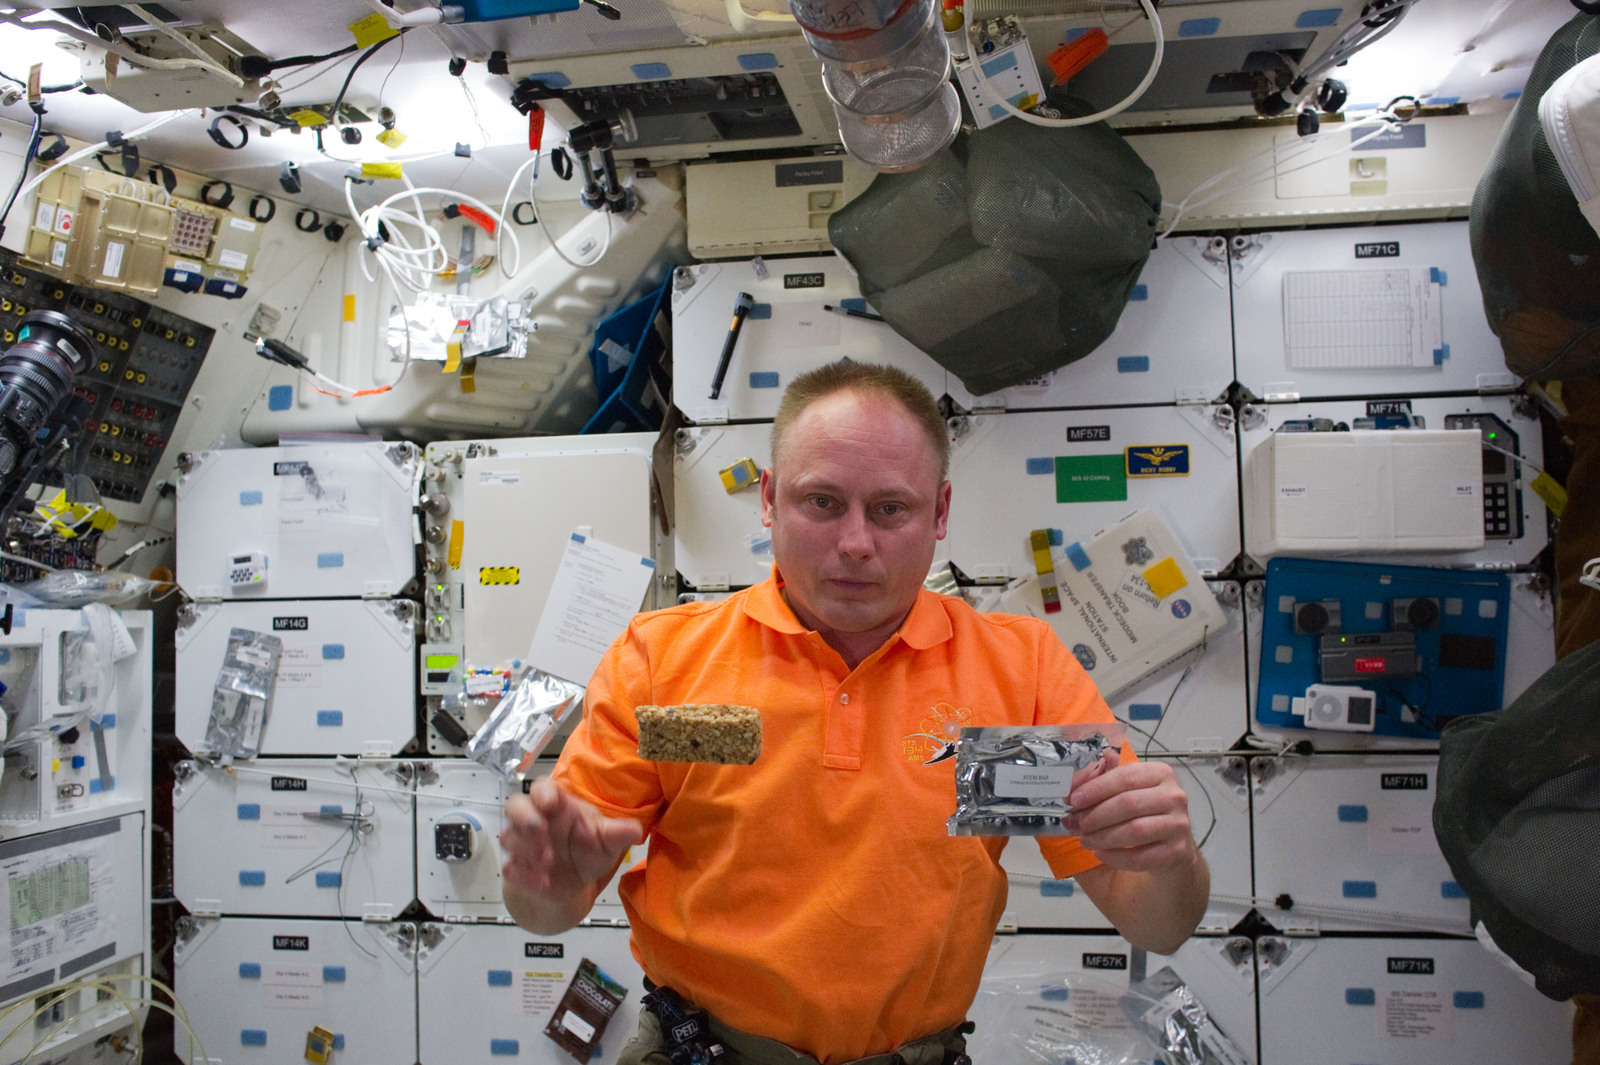 S134E009701 - STS-134 - STS-134 MS Fincke poses for a photo with a STEM Bar